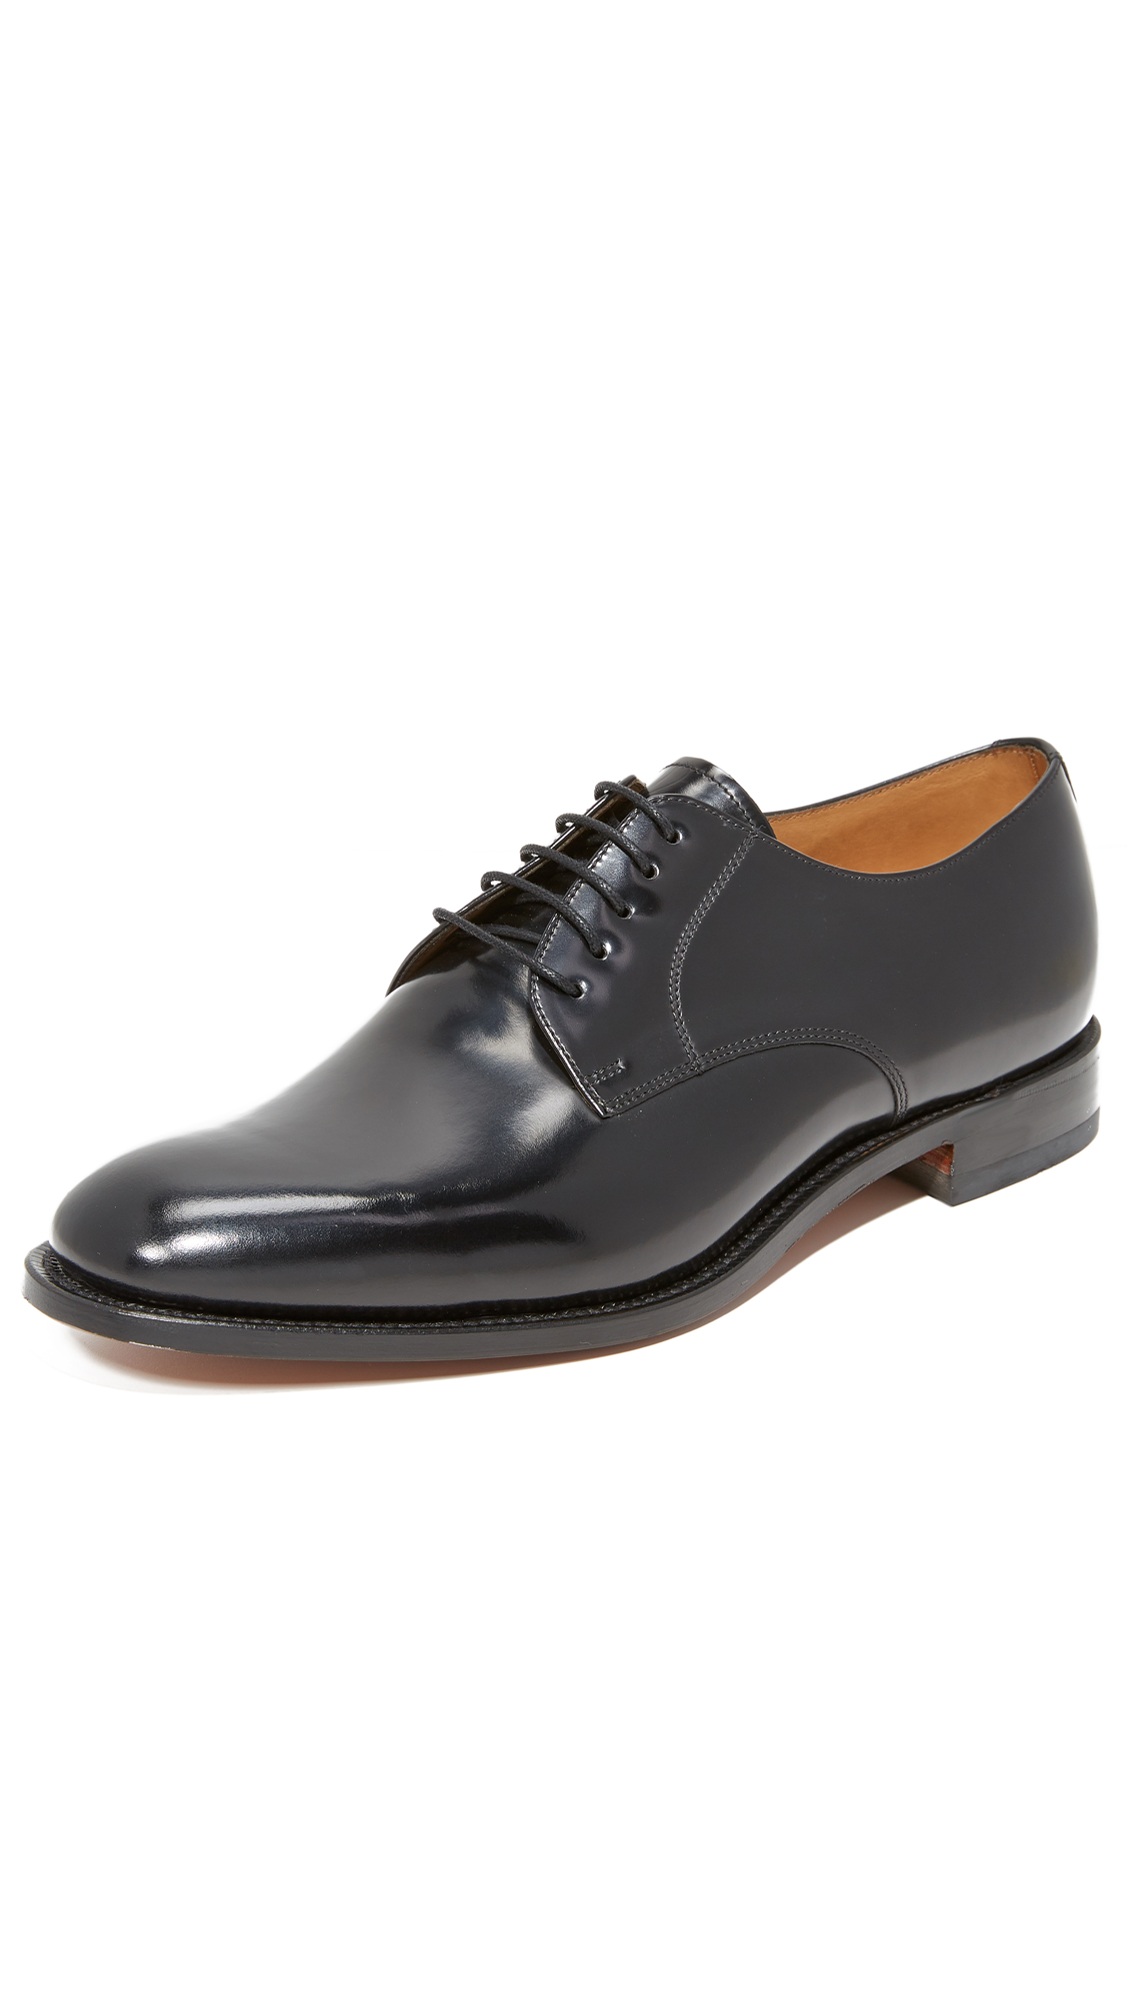 Loake L1 Polished Plain Toe Oxfords